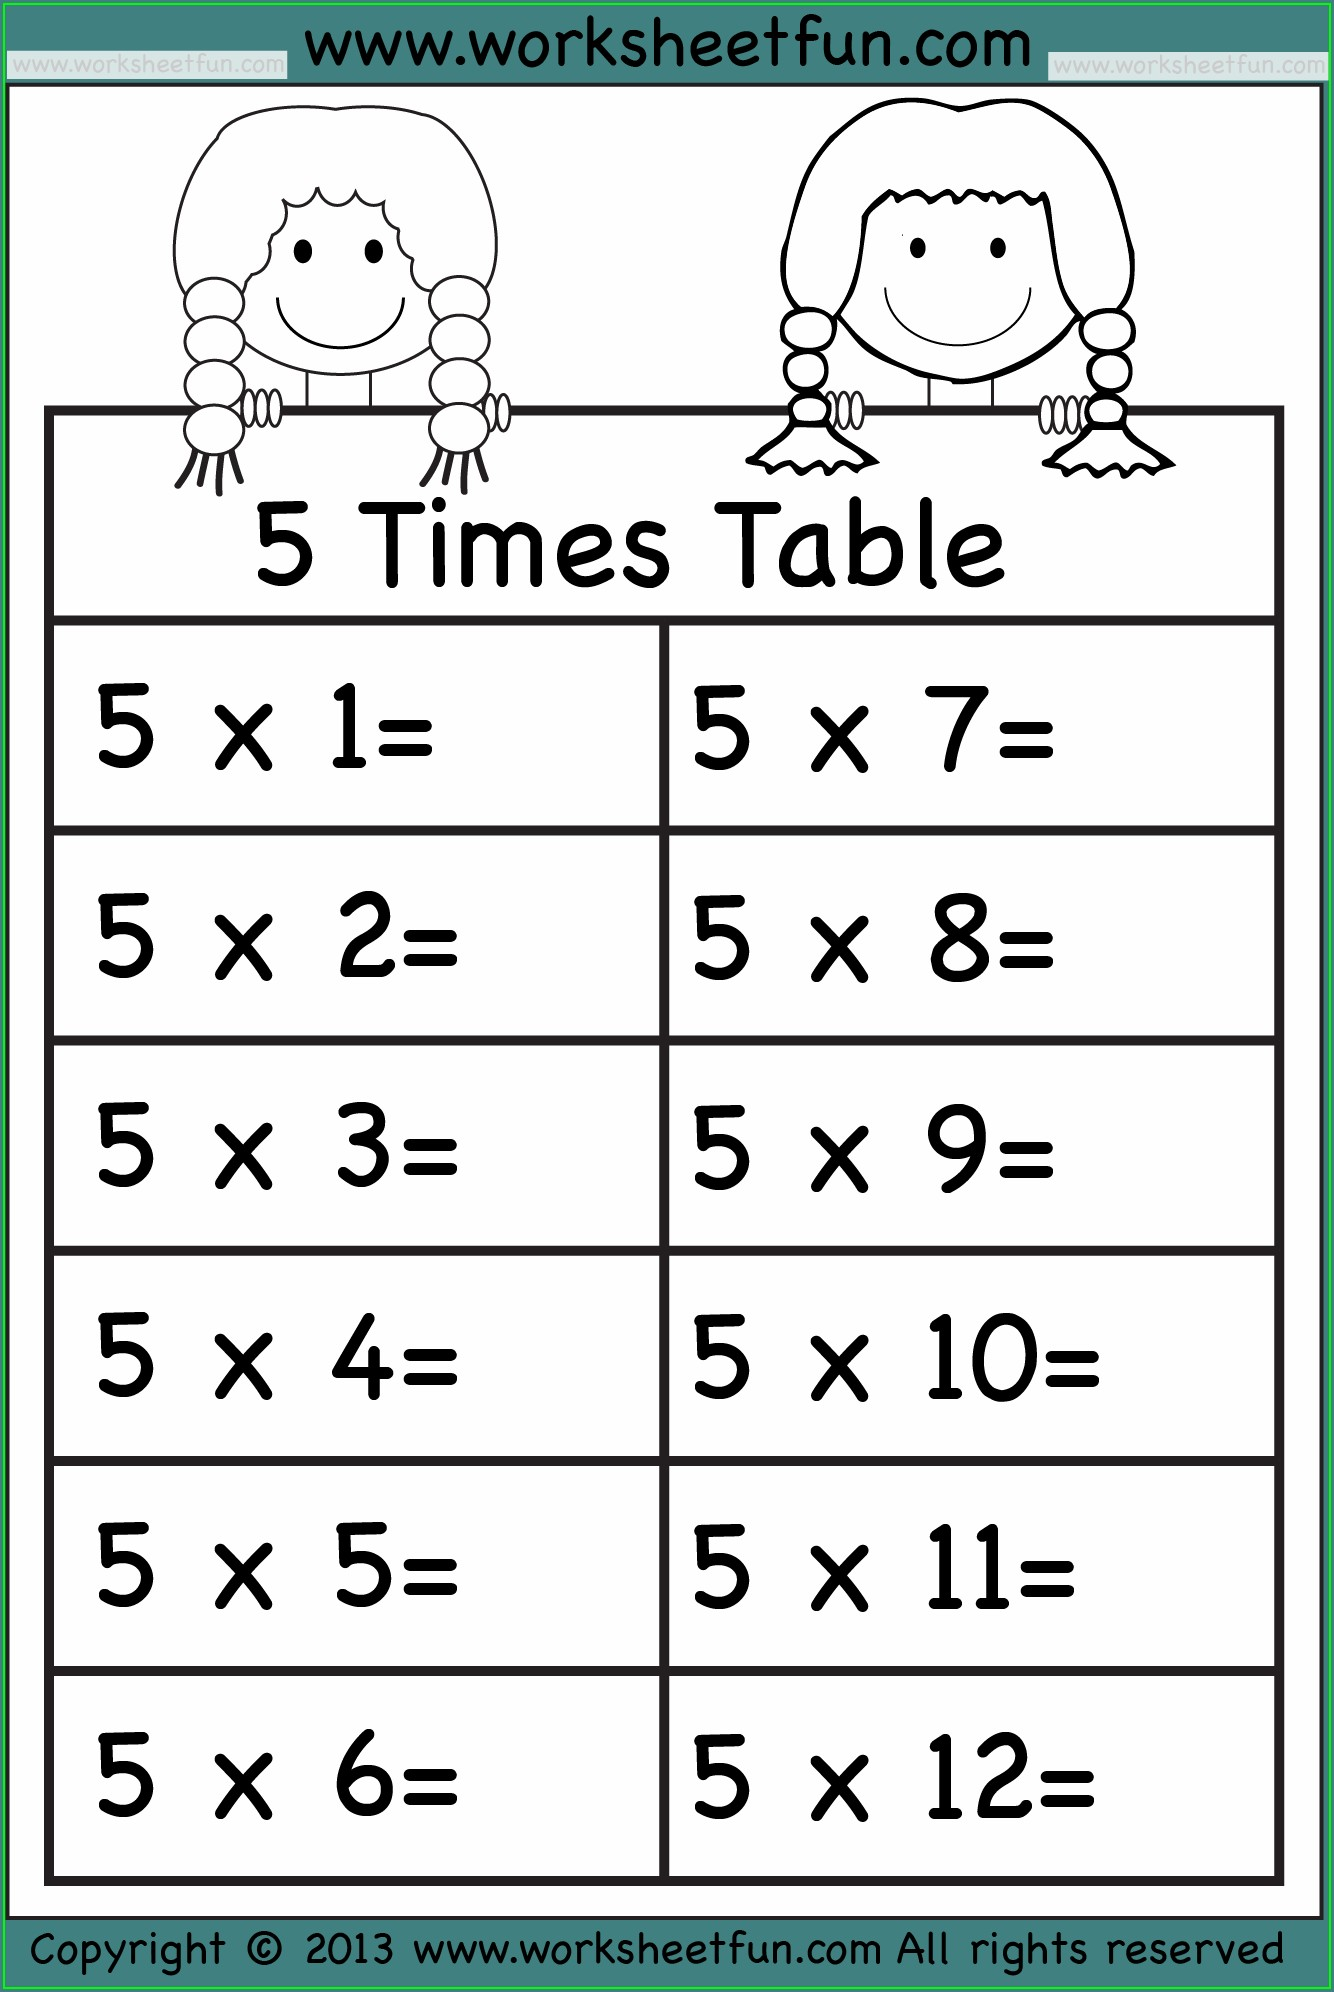 Worksheet On Time For Grade 1